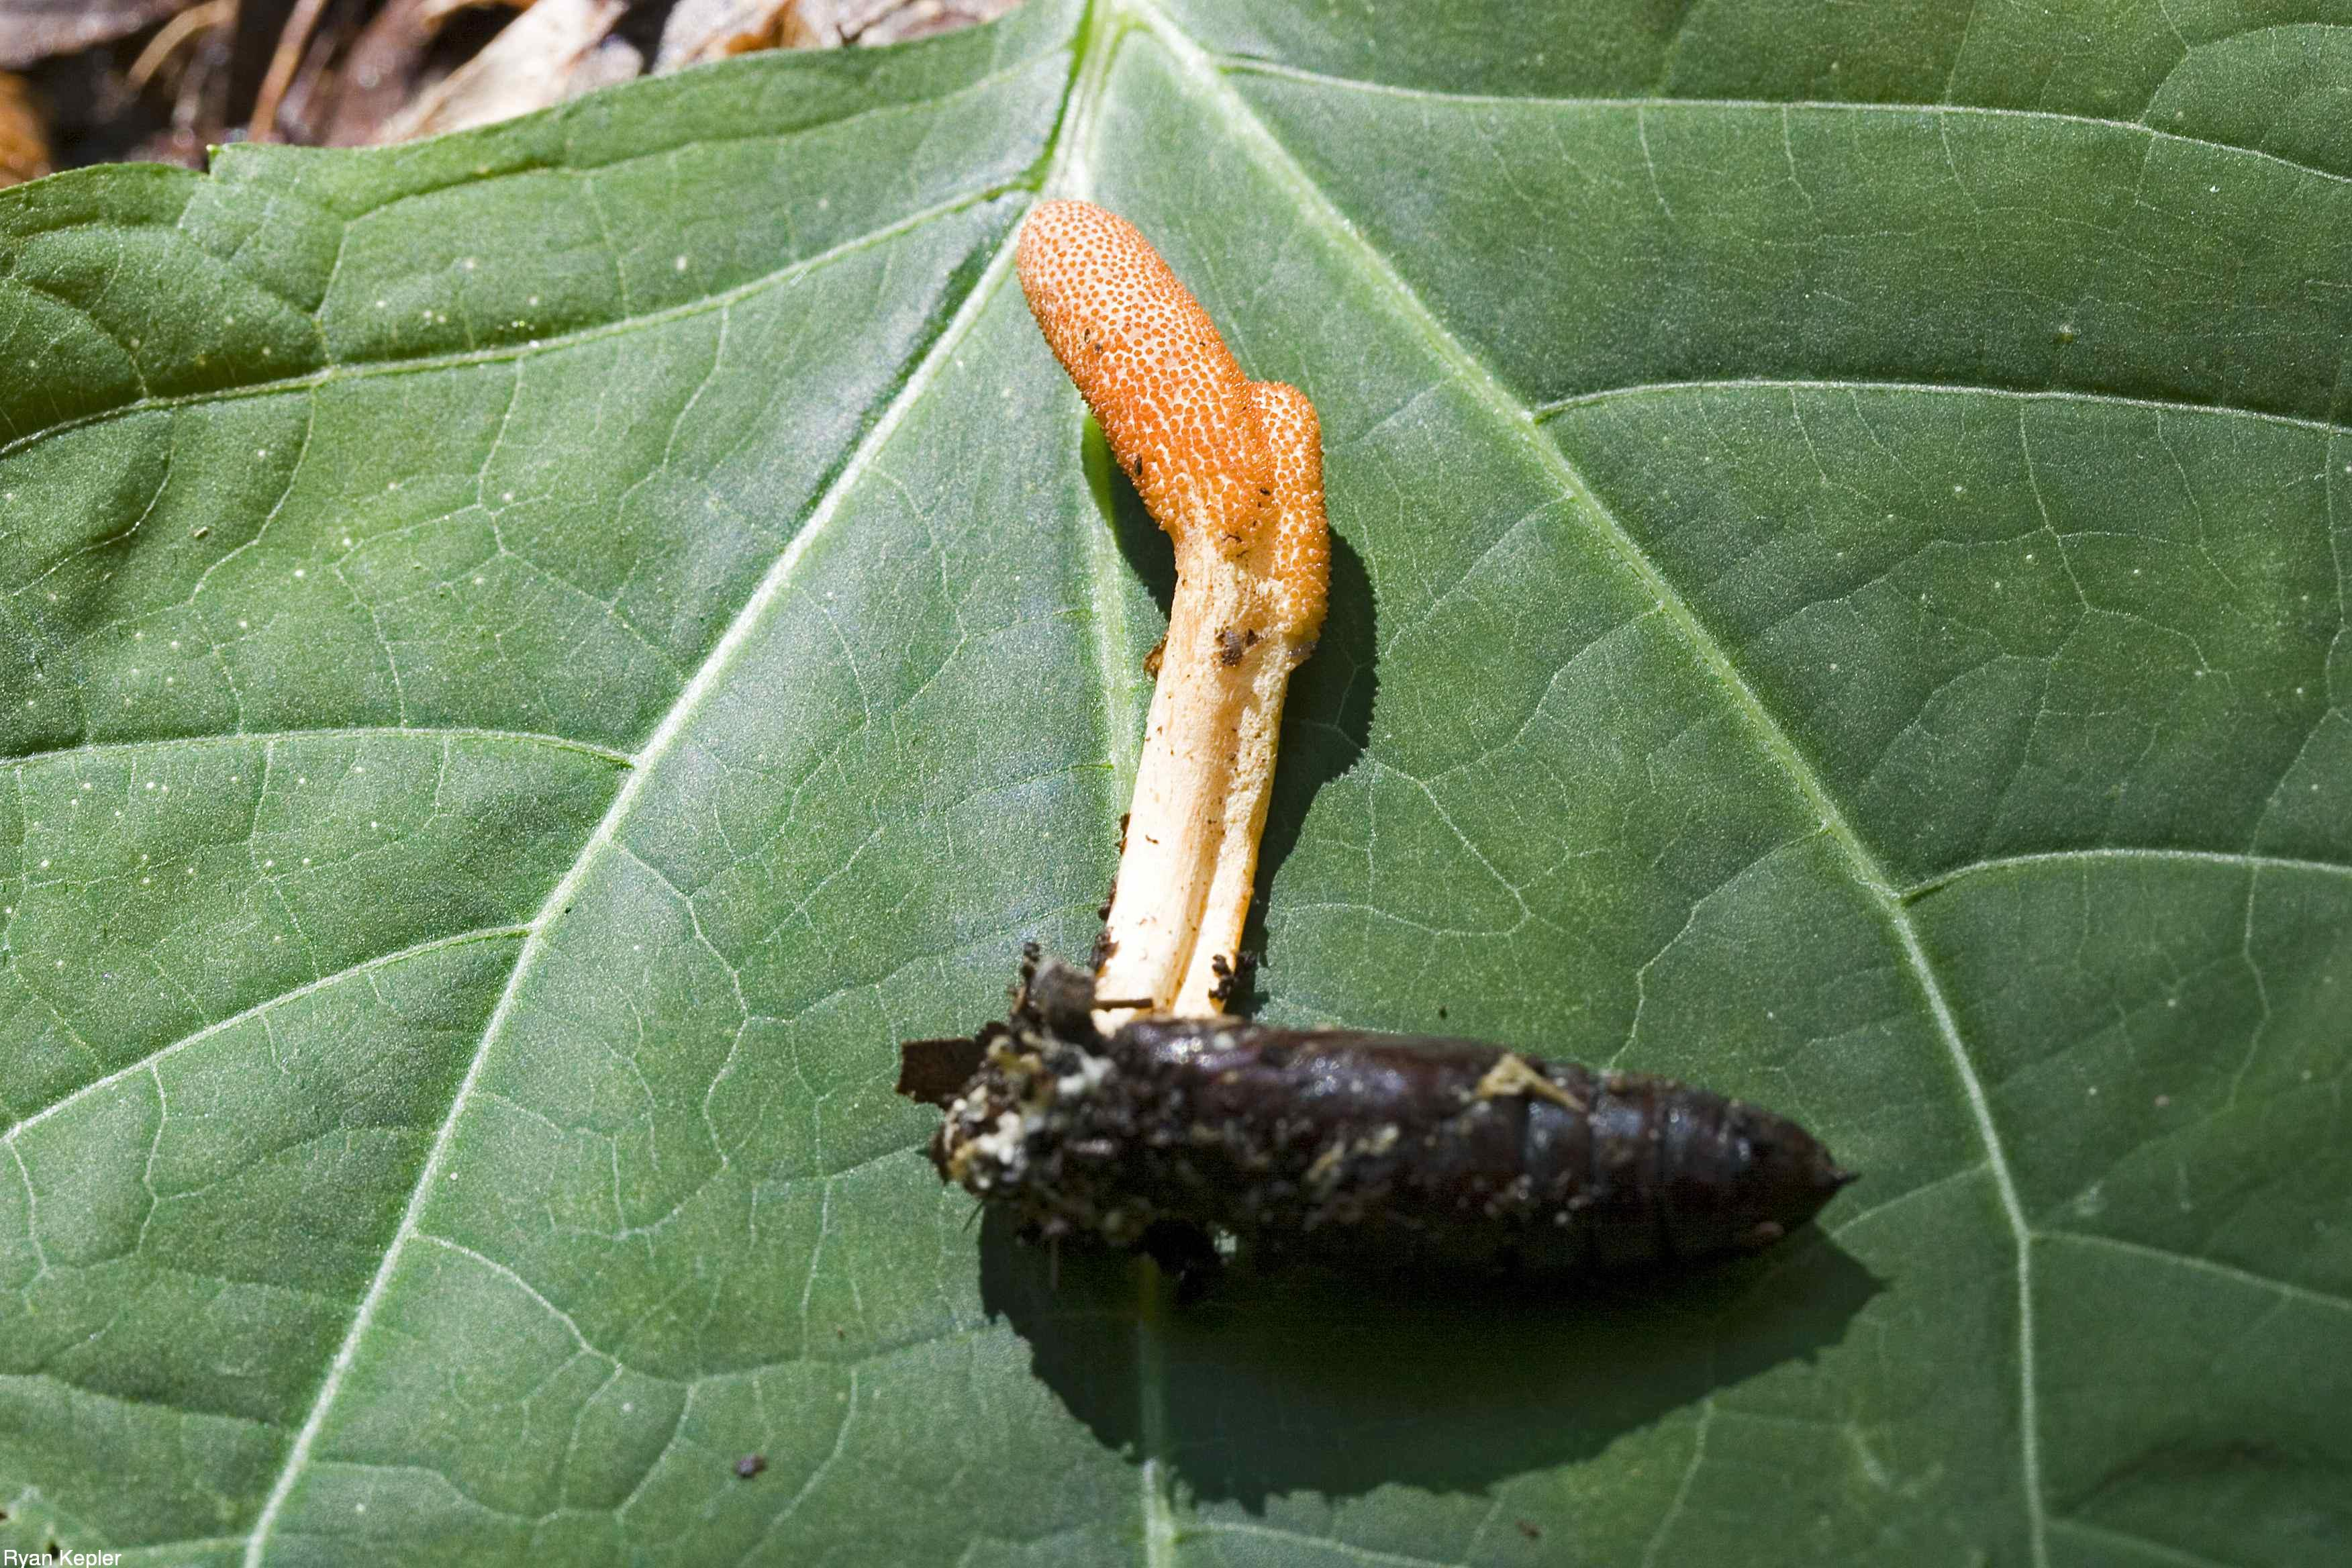 Cordyceps militaris (Ryan Kepler)